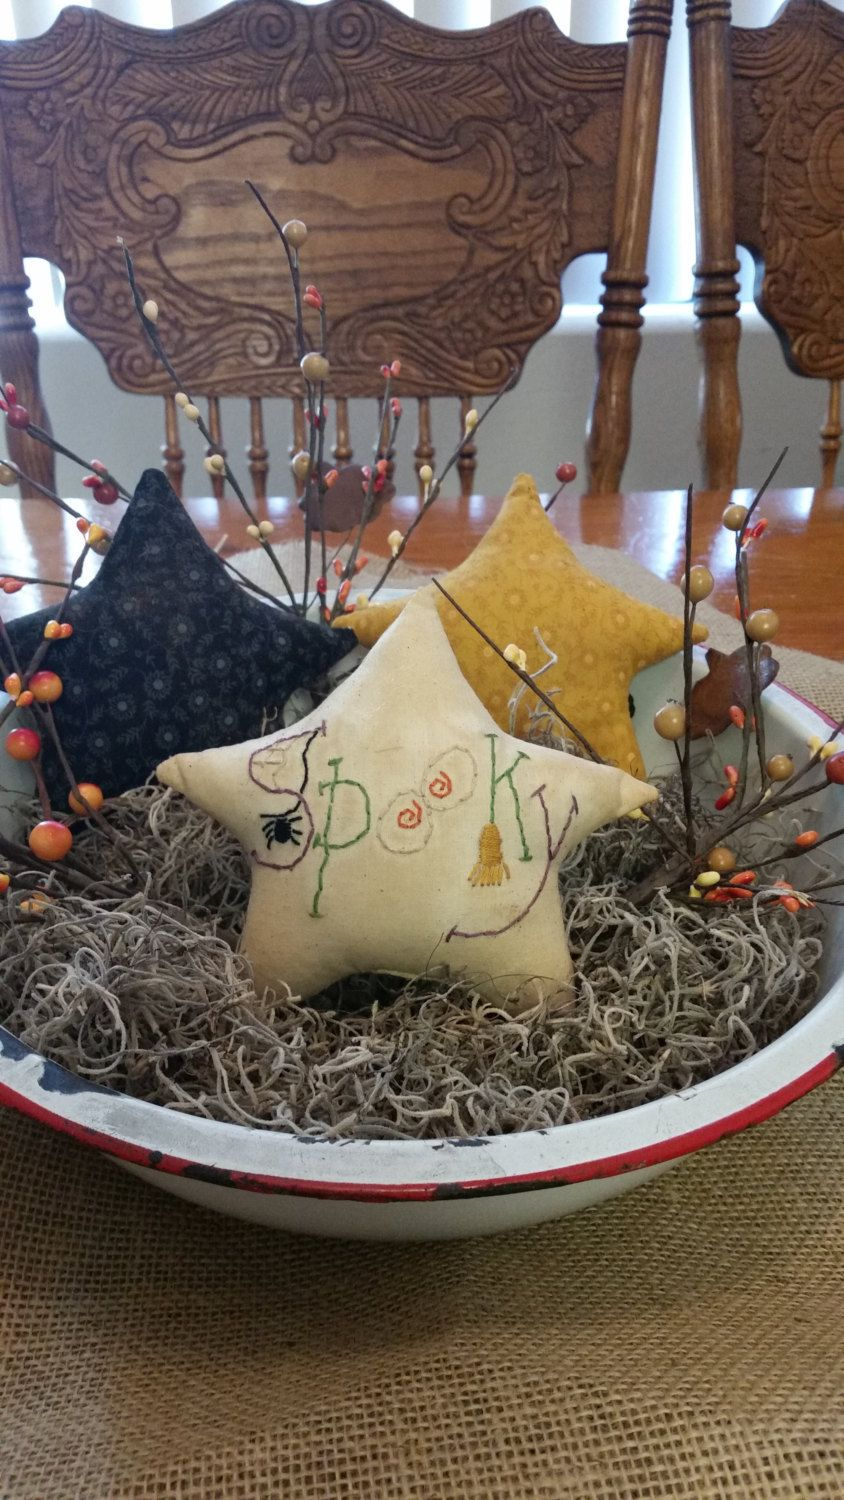 Halloween stars fall stars ornies bowl fillers fall decor Halloween - Primitive Halloween Decor